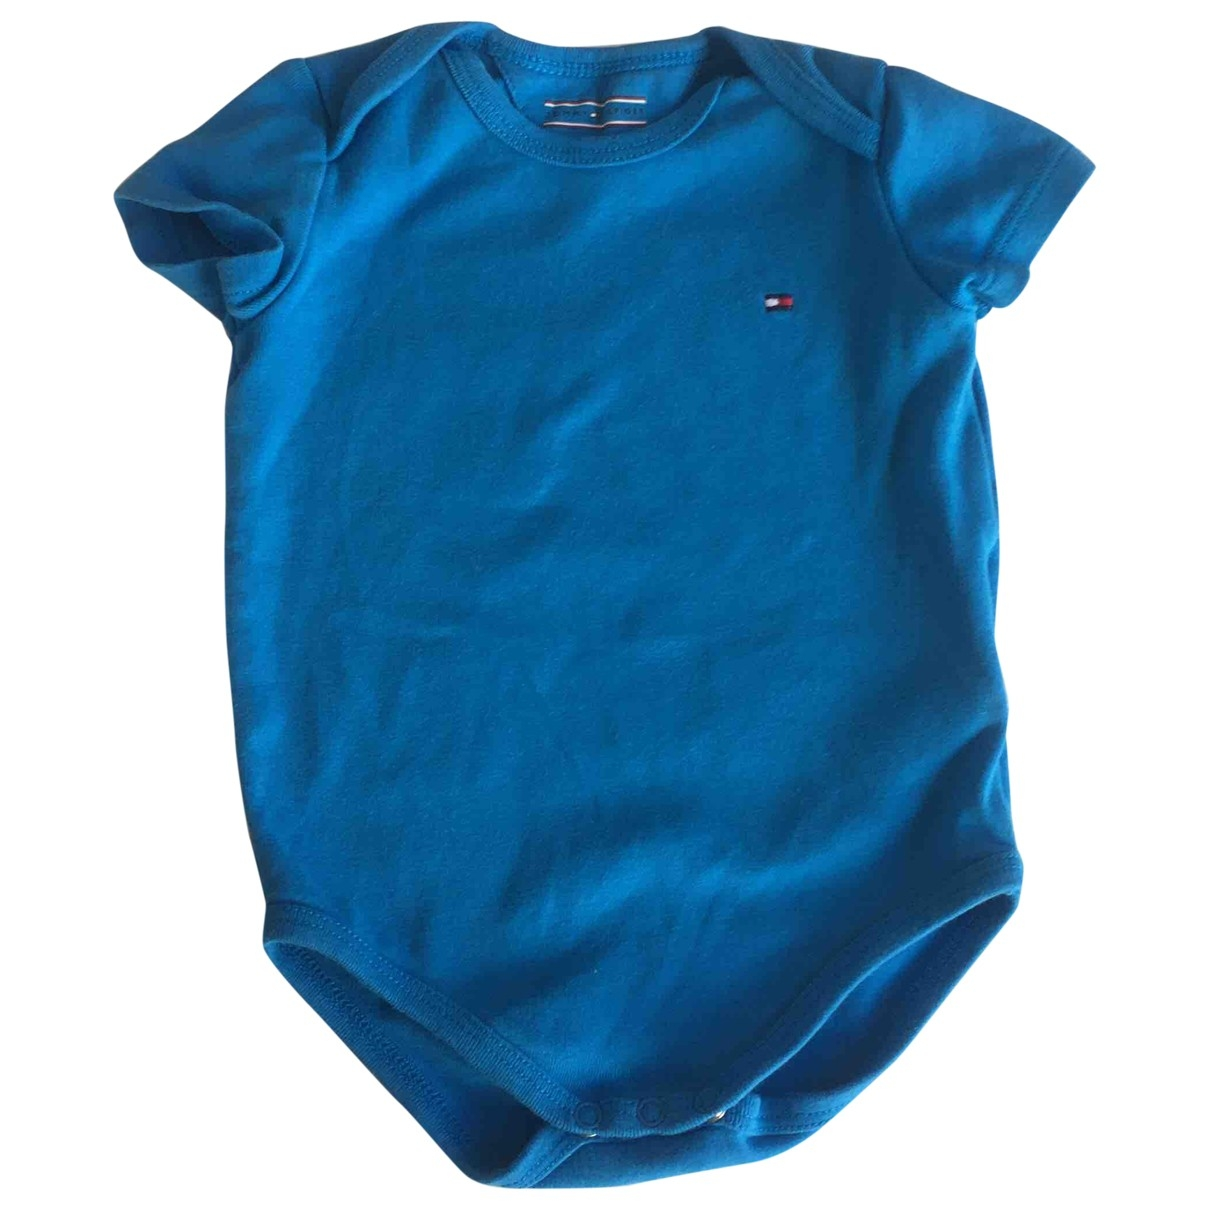 Tommy Hilfiger \N Blue Cotton  top for Kids 6 months - up to 67cm FR